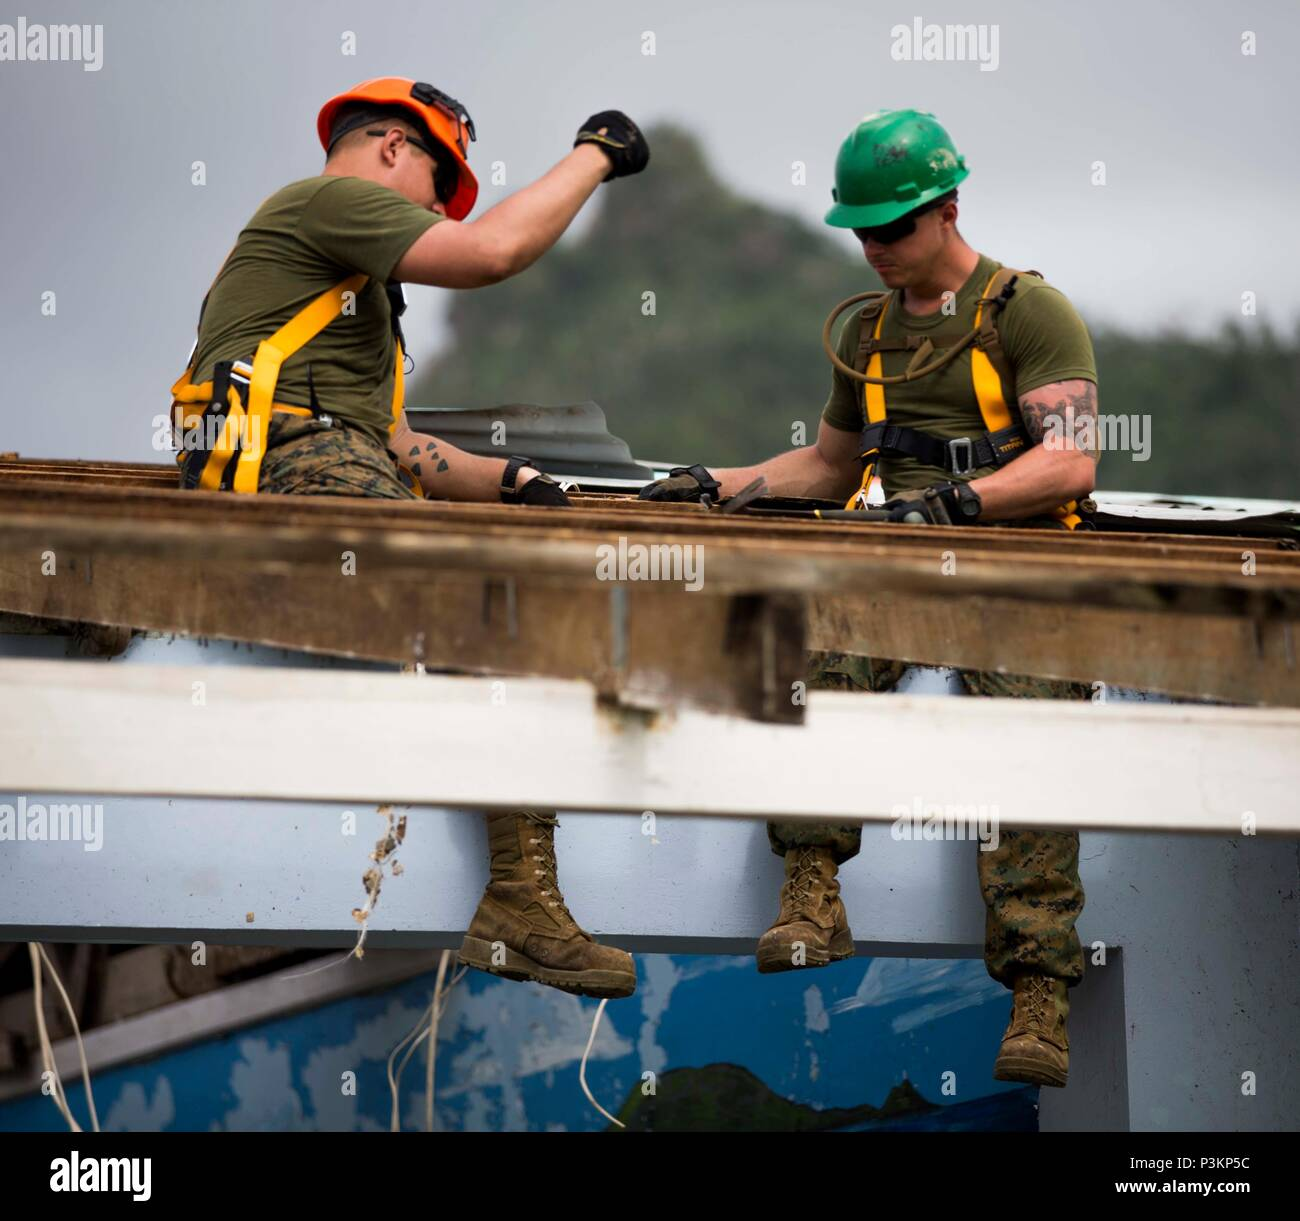 U.S. Marines Lance Cpl. Nathan D. Lyons and Cpl. Derek C. Brisendine, combat engineers with  Task Force Koa Moana 16.2, conduct vertical construction training at St. John's College, Ovalau, Fiji, July 4, 2016.  Marines and Sailors with the task force will share engineering skills with Fijians to strengthen mil-to-mil relationships and interoperability. (U.S. Marine Corps imagery by MCIPAC Combat Camera Lance Cpl. Jesus McCloud/ Released) - Stock Image